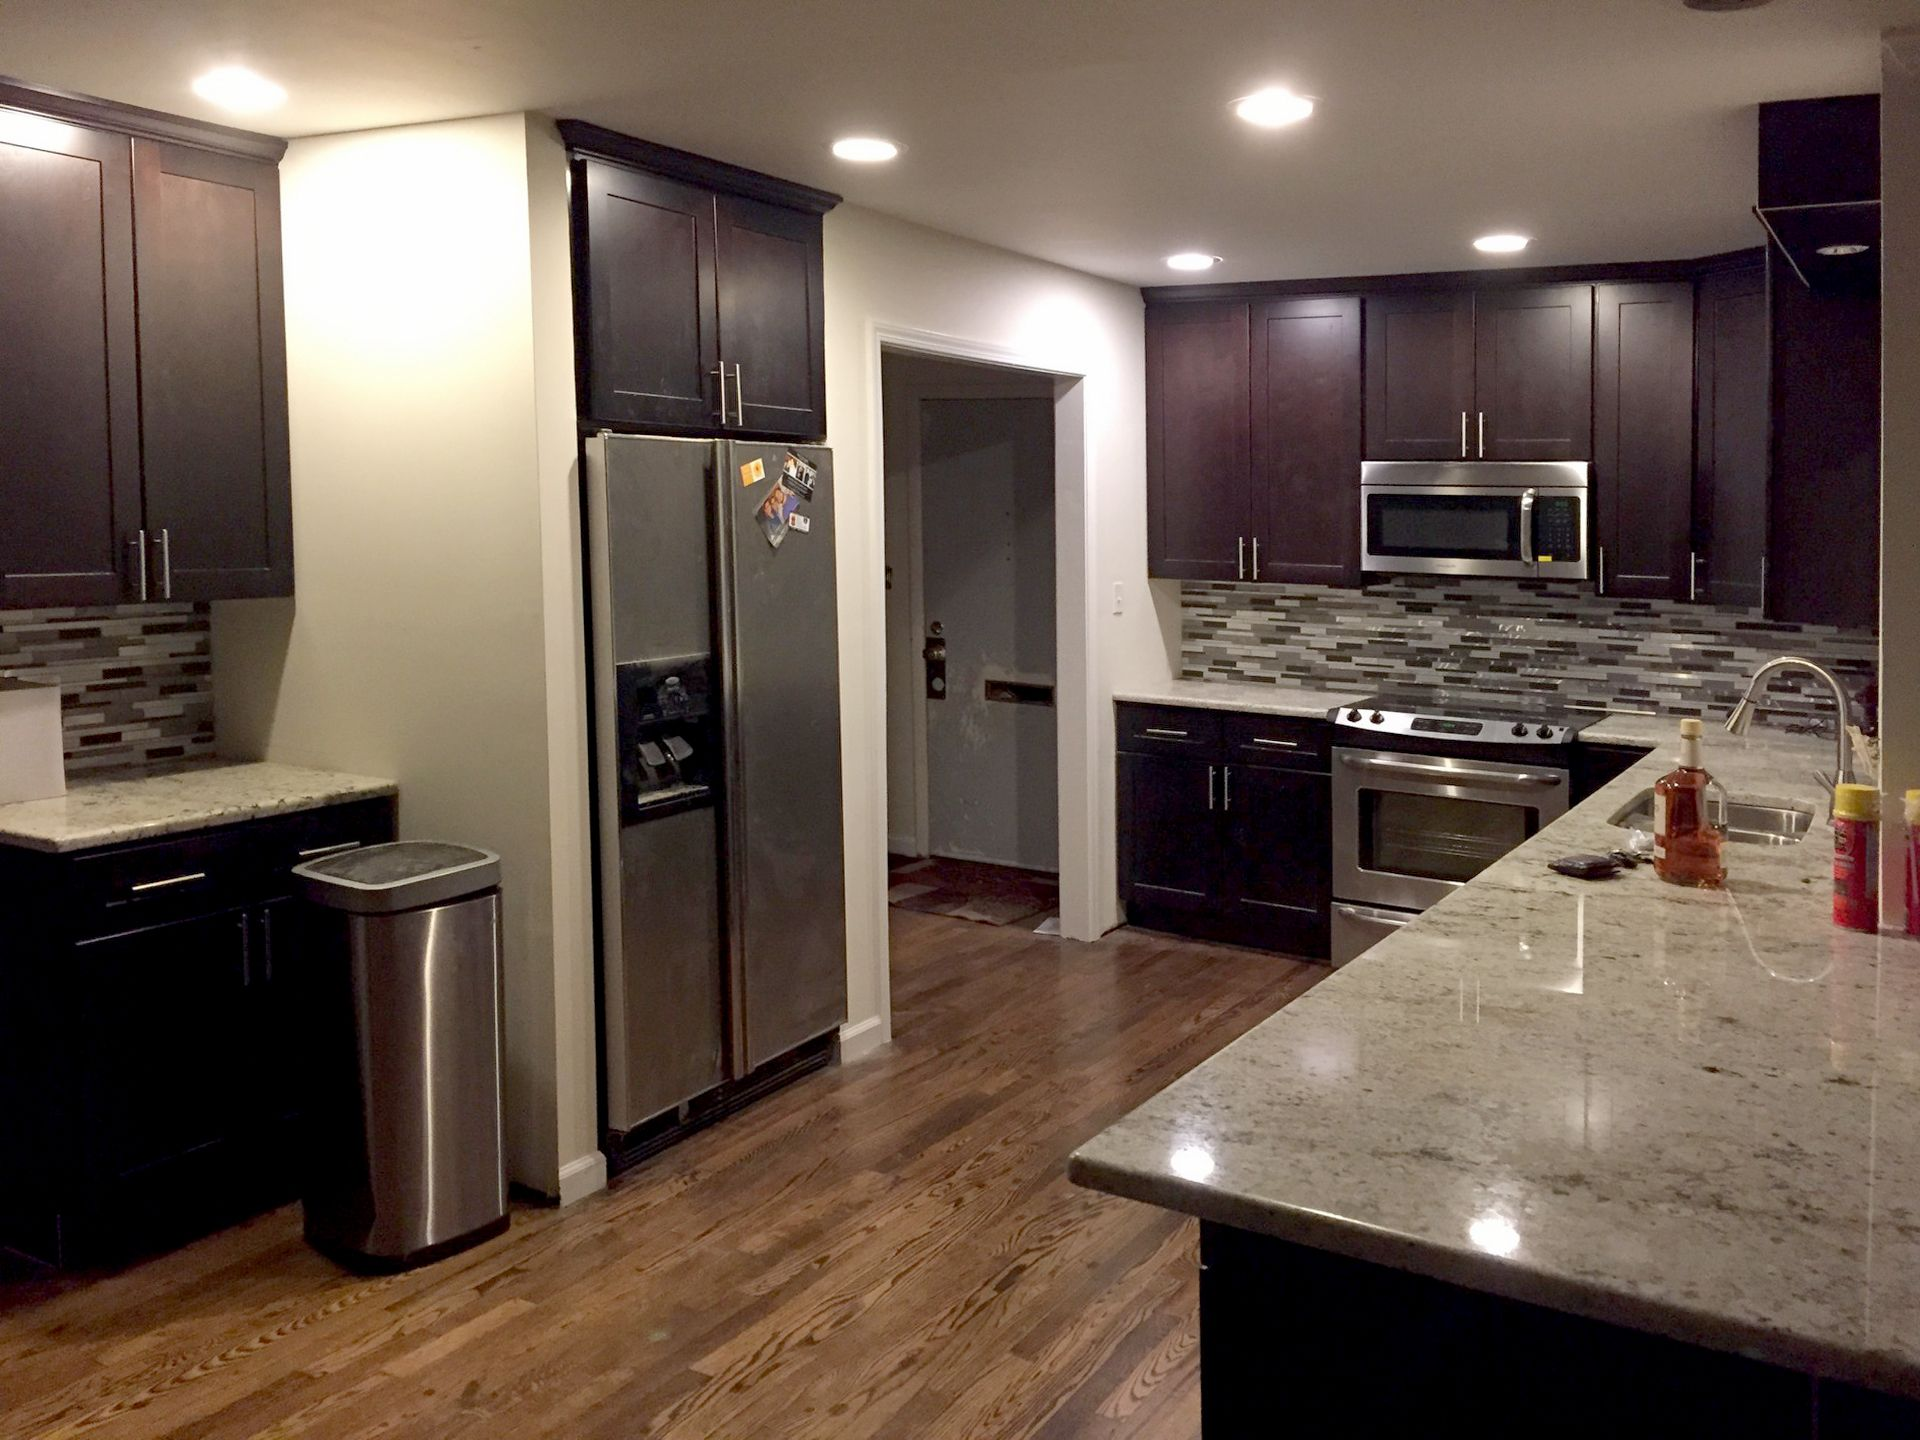 Best Whole House Remodel To Include Surplus Warehouse Supplied 400 x 300